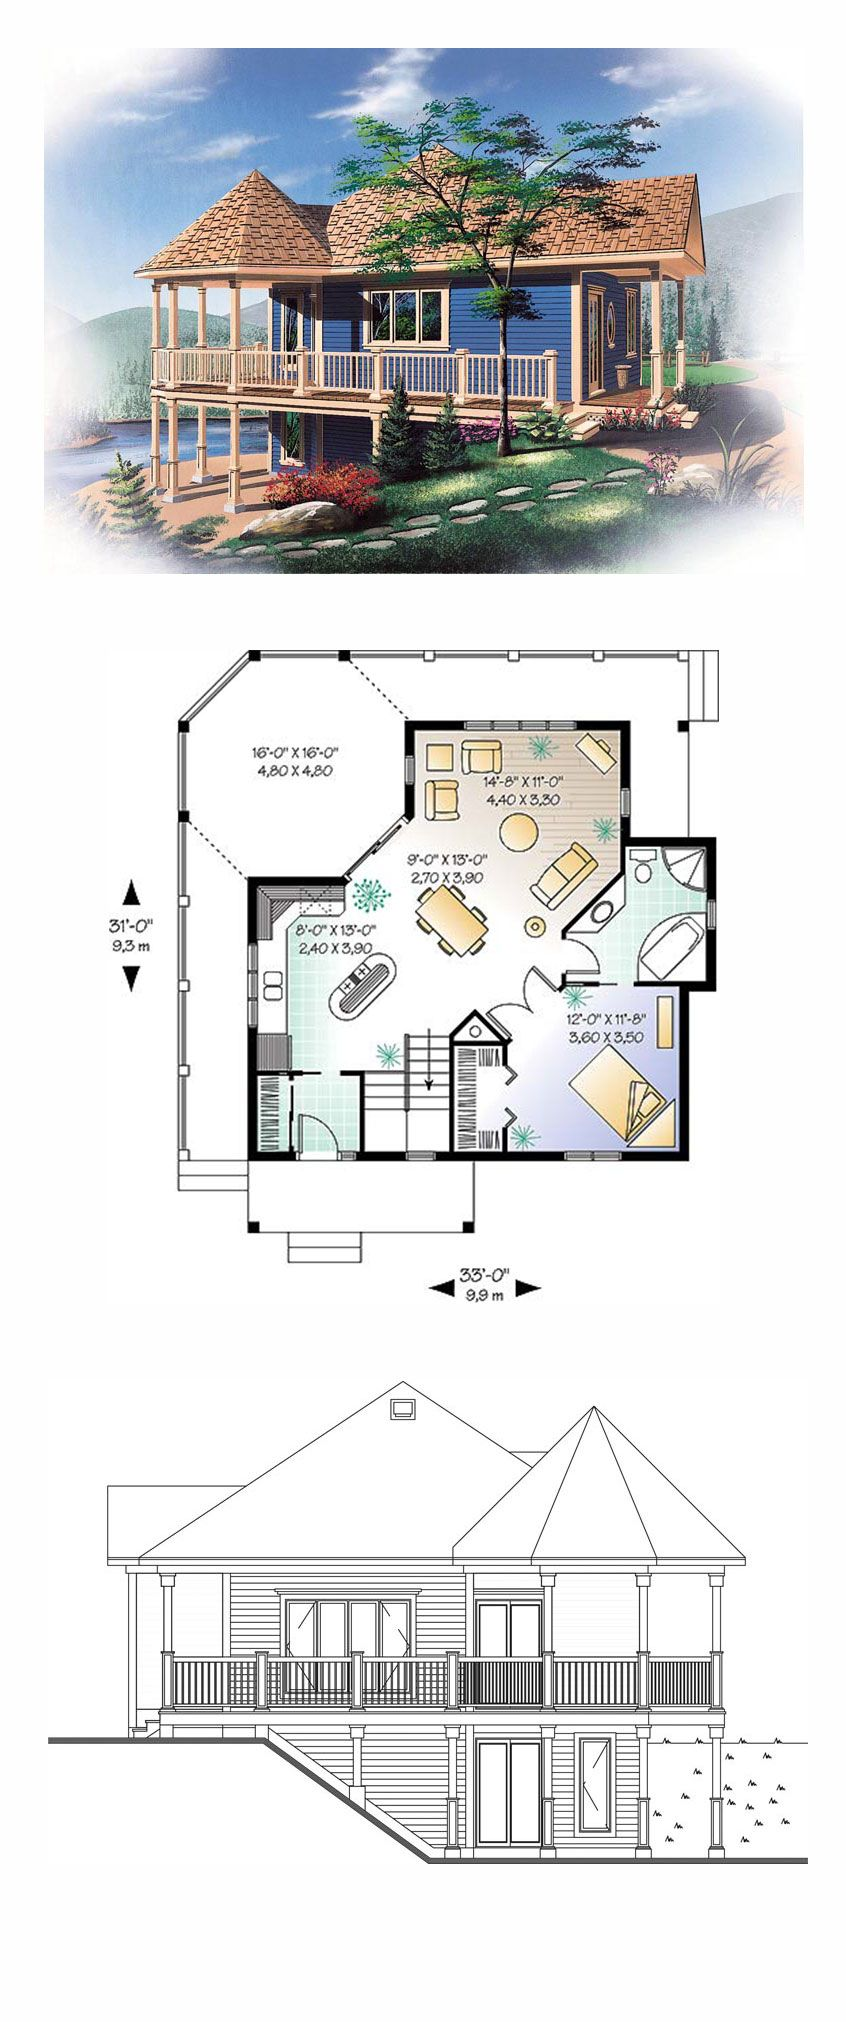 Lakefront style cool house plan id chp total living area